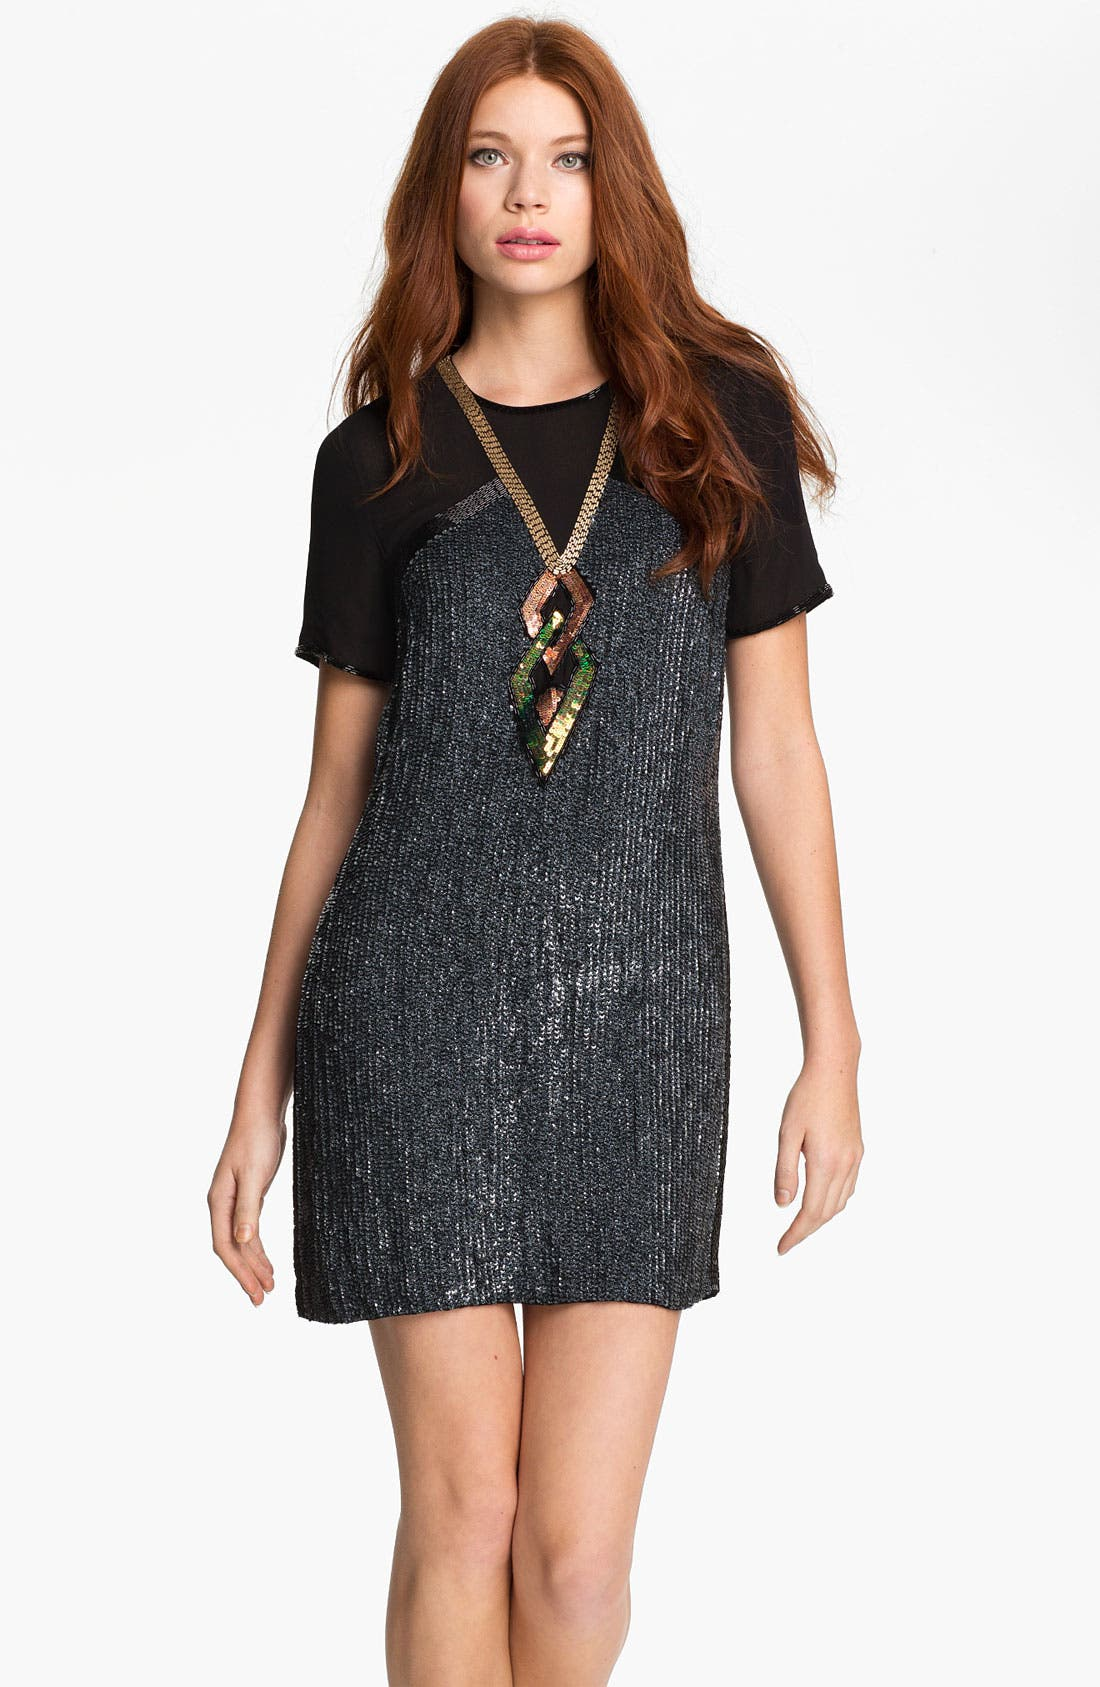 Alternate Image 1 Selected - French Connection 'Shoot to Thrill' Sequin Shirt Dress